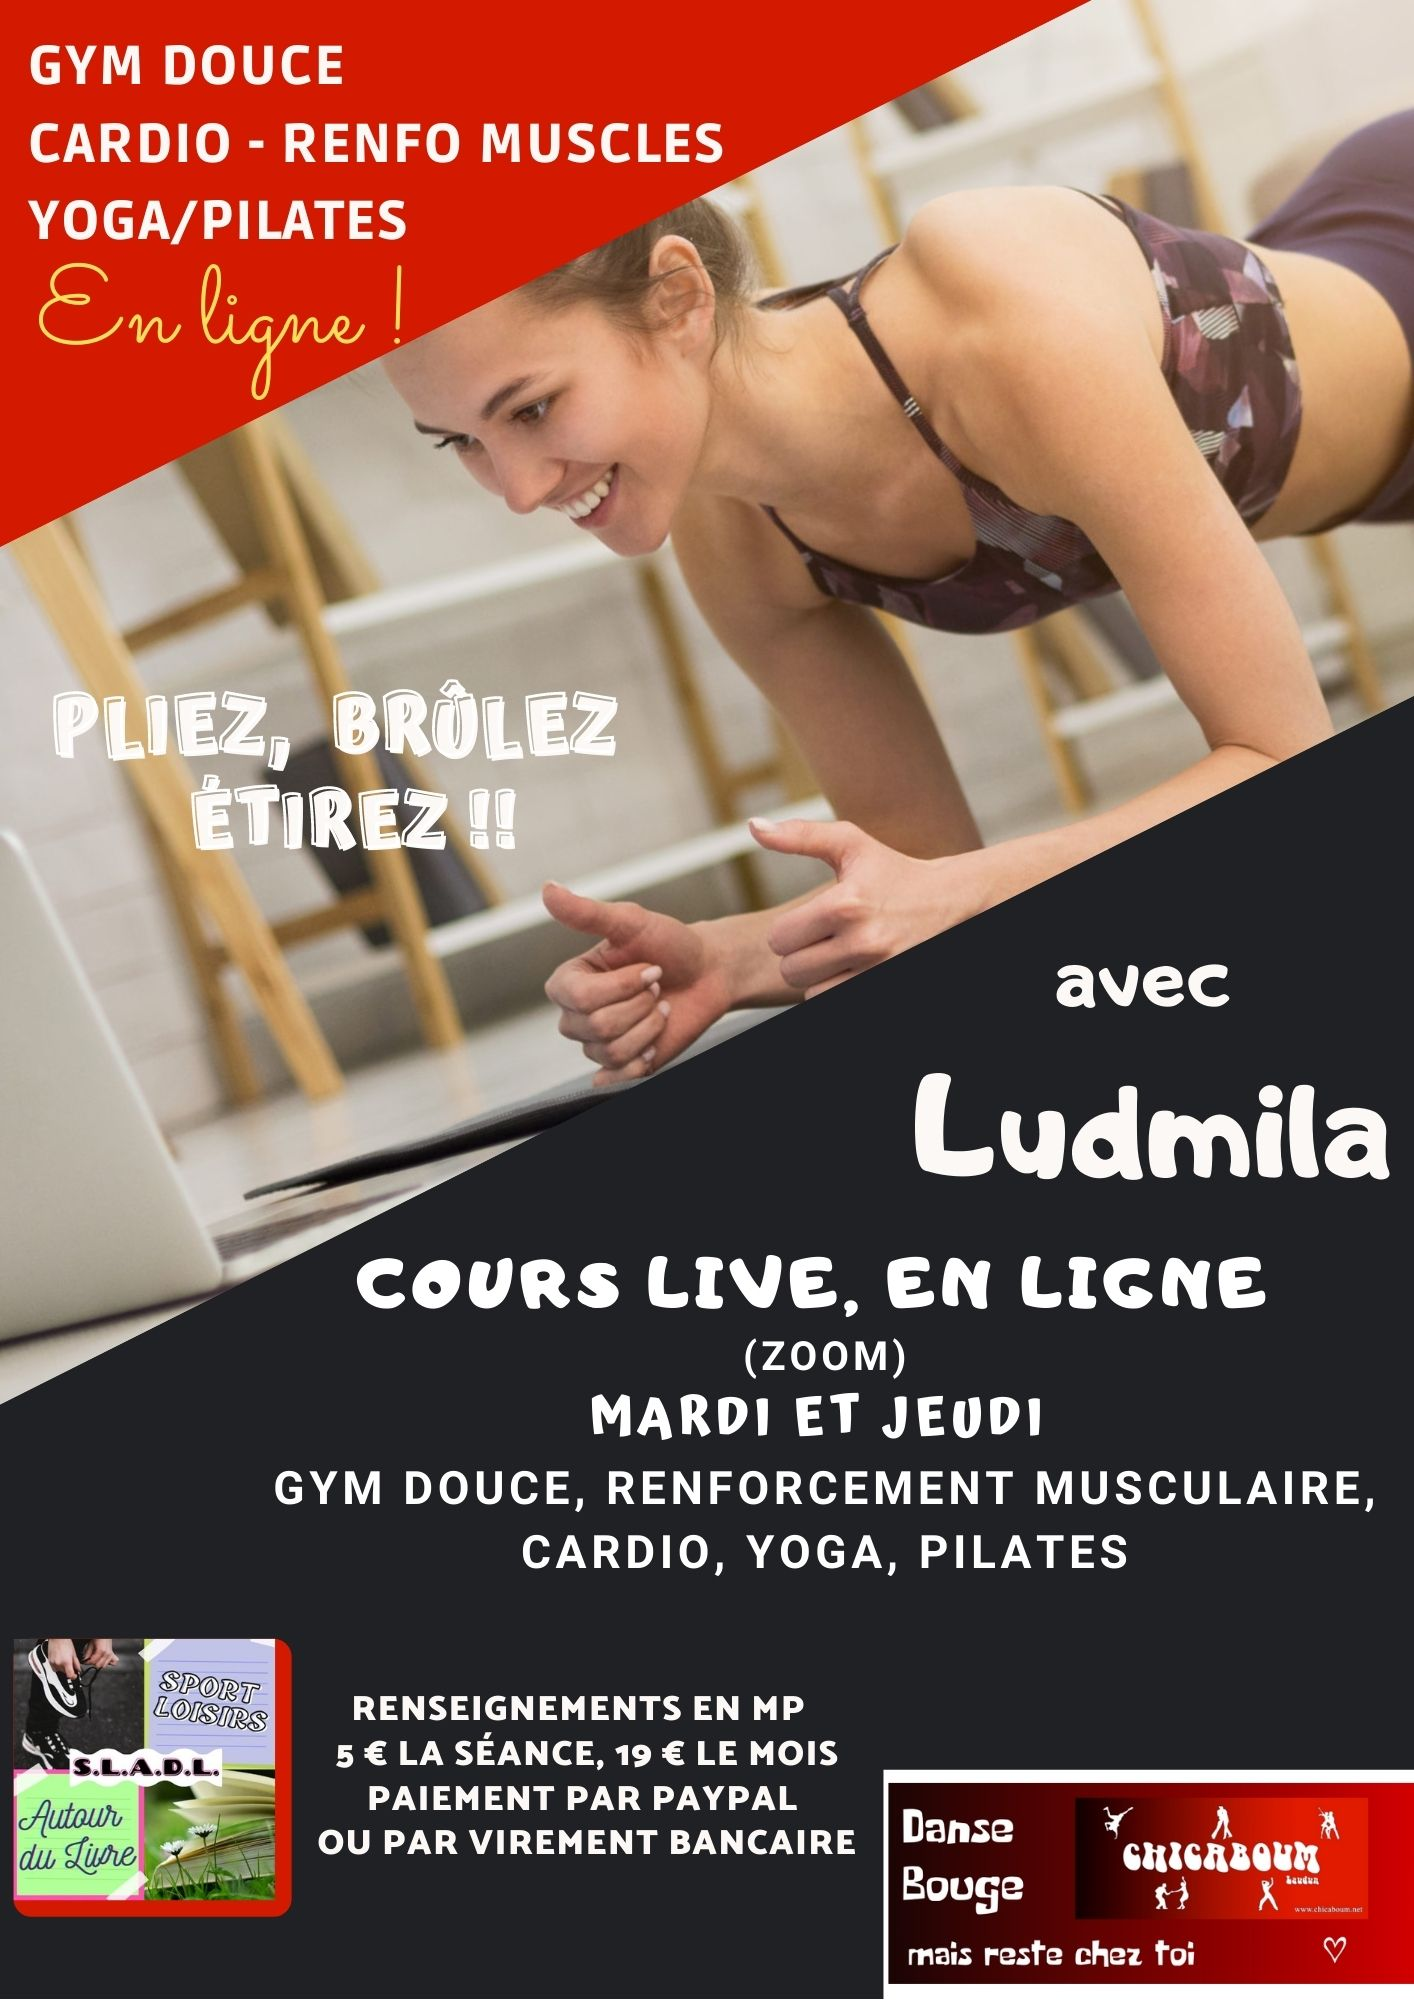 GYM DOUCE CARDIO RENFO MUSCLES YOGA PILATE